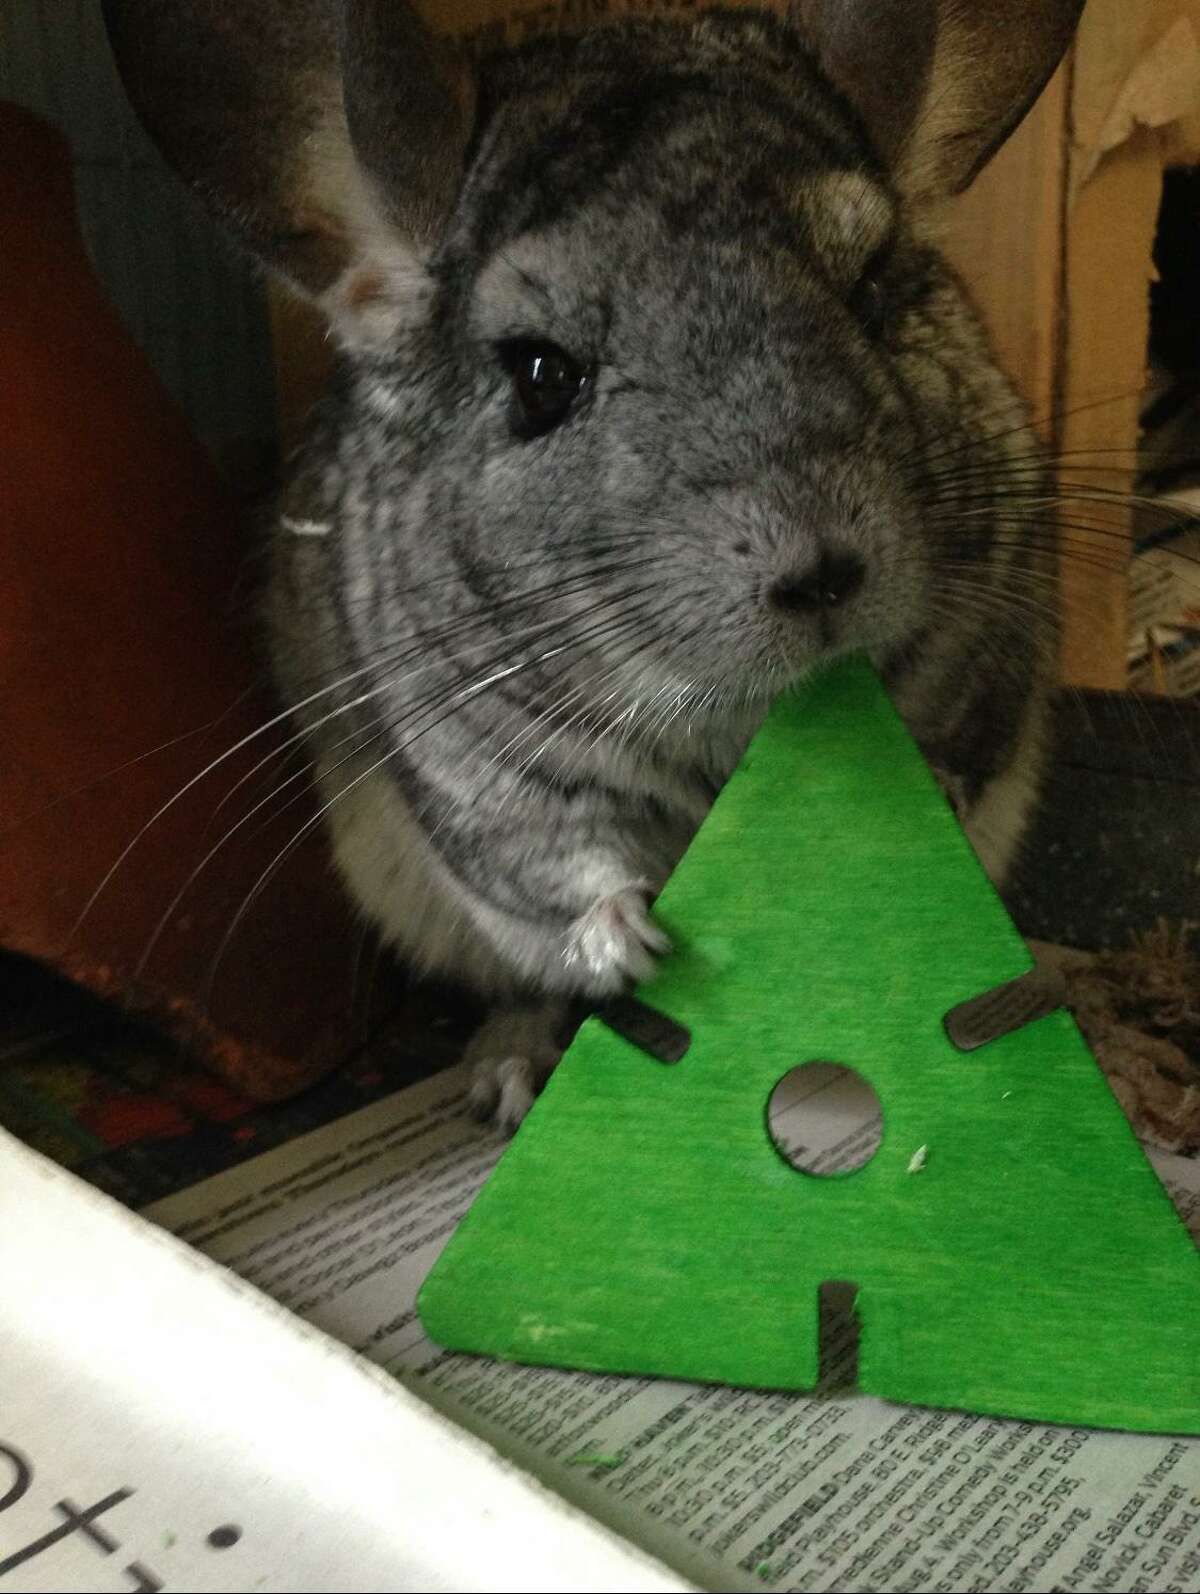 Wiggles the chinchilla - elected as mayor of the Beardsley Zoo in Bridgeport, Conn., in November 2020 - died Sunday from